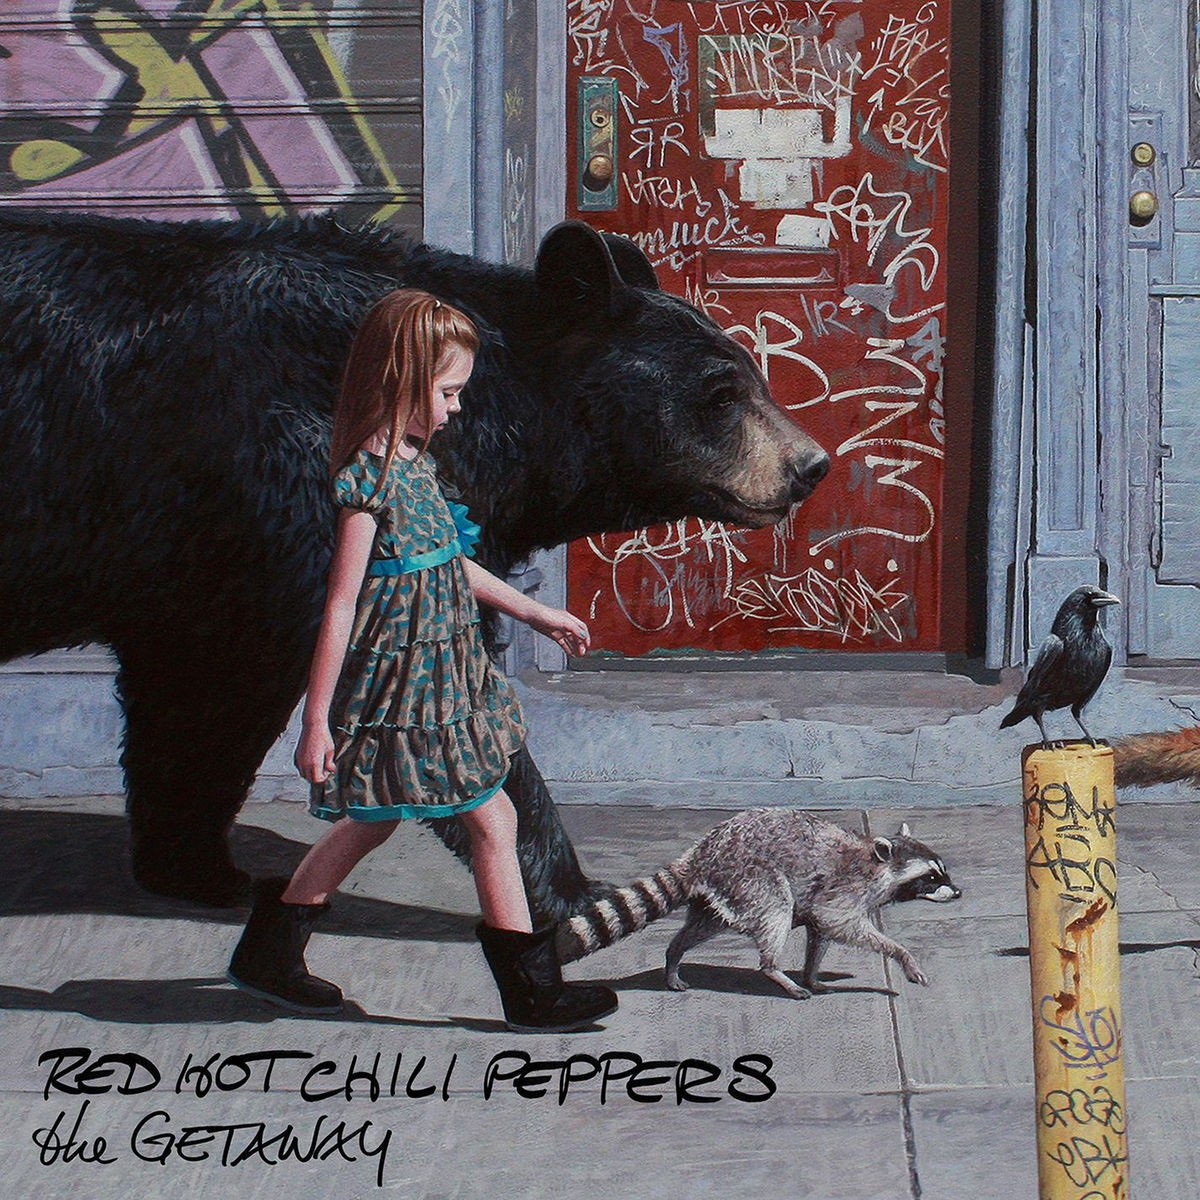 Red Hot Chili Peppers - The Getaway VINYL - 9362492016